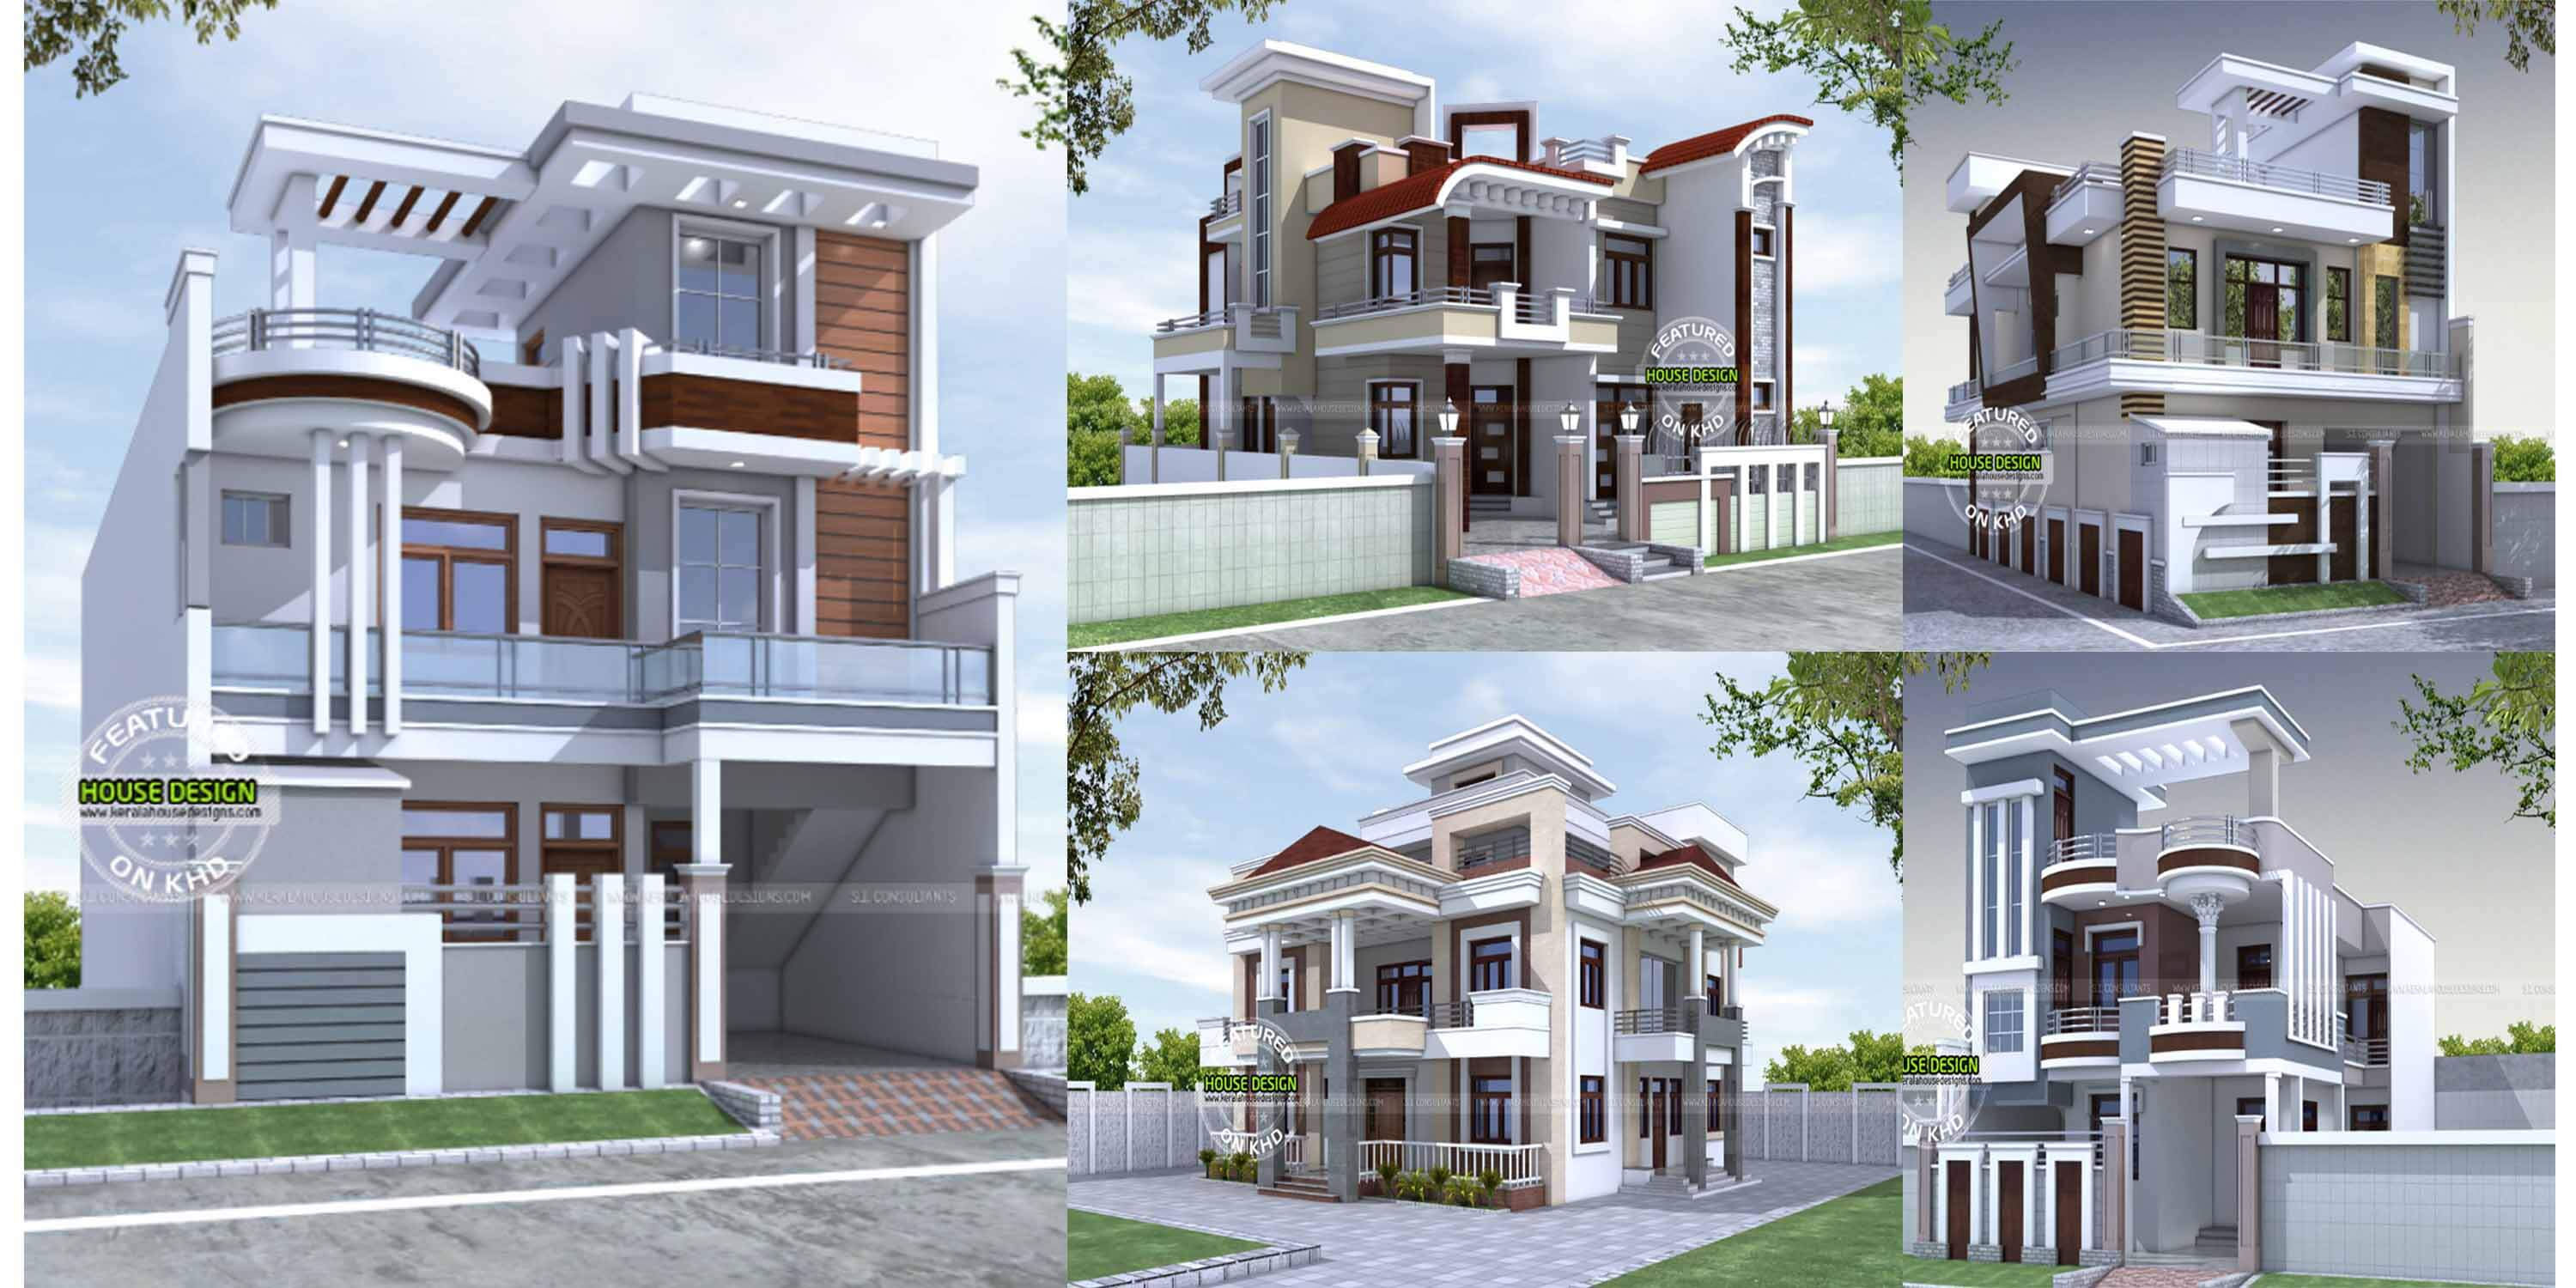 These are top house design ideas designs by s i consultant